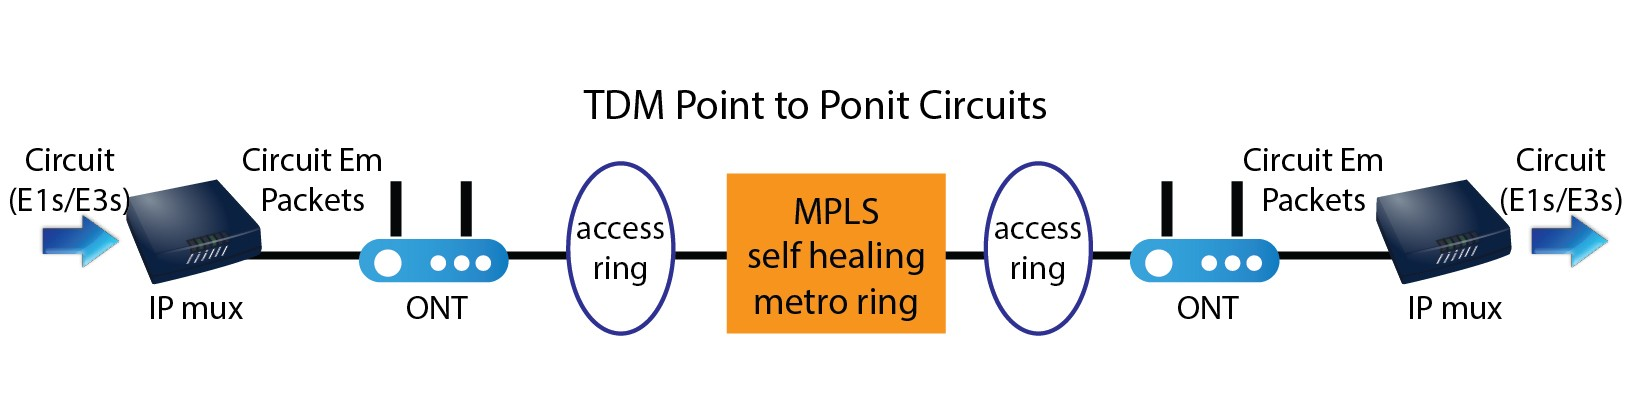 TDM Point to Point Circuts